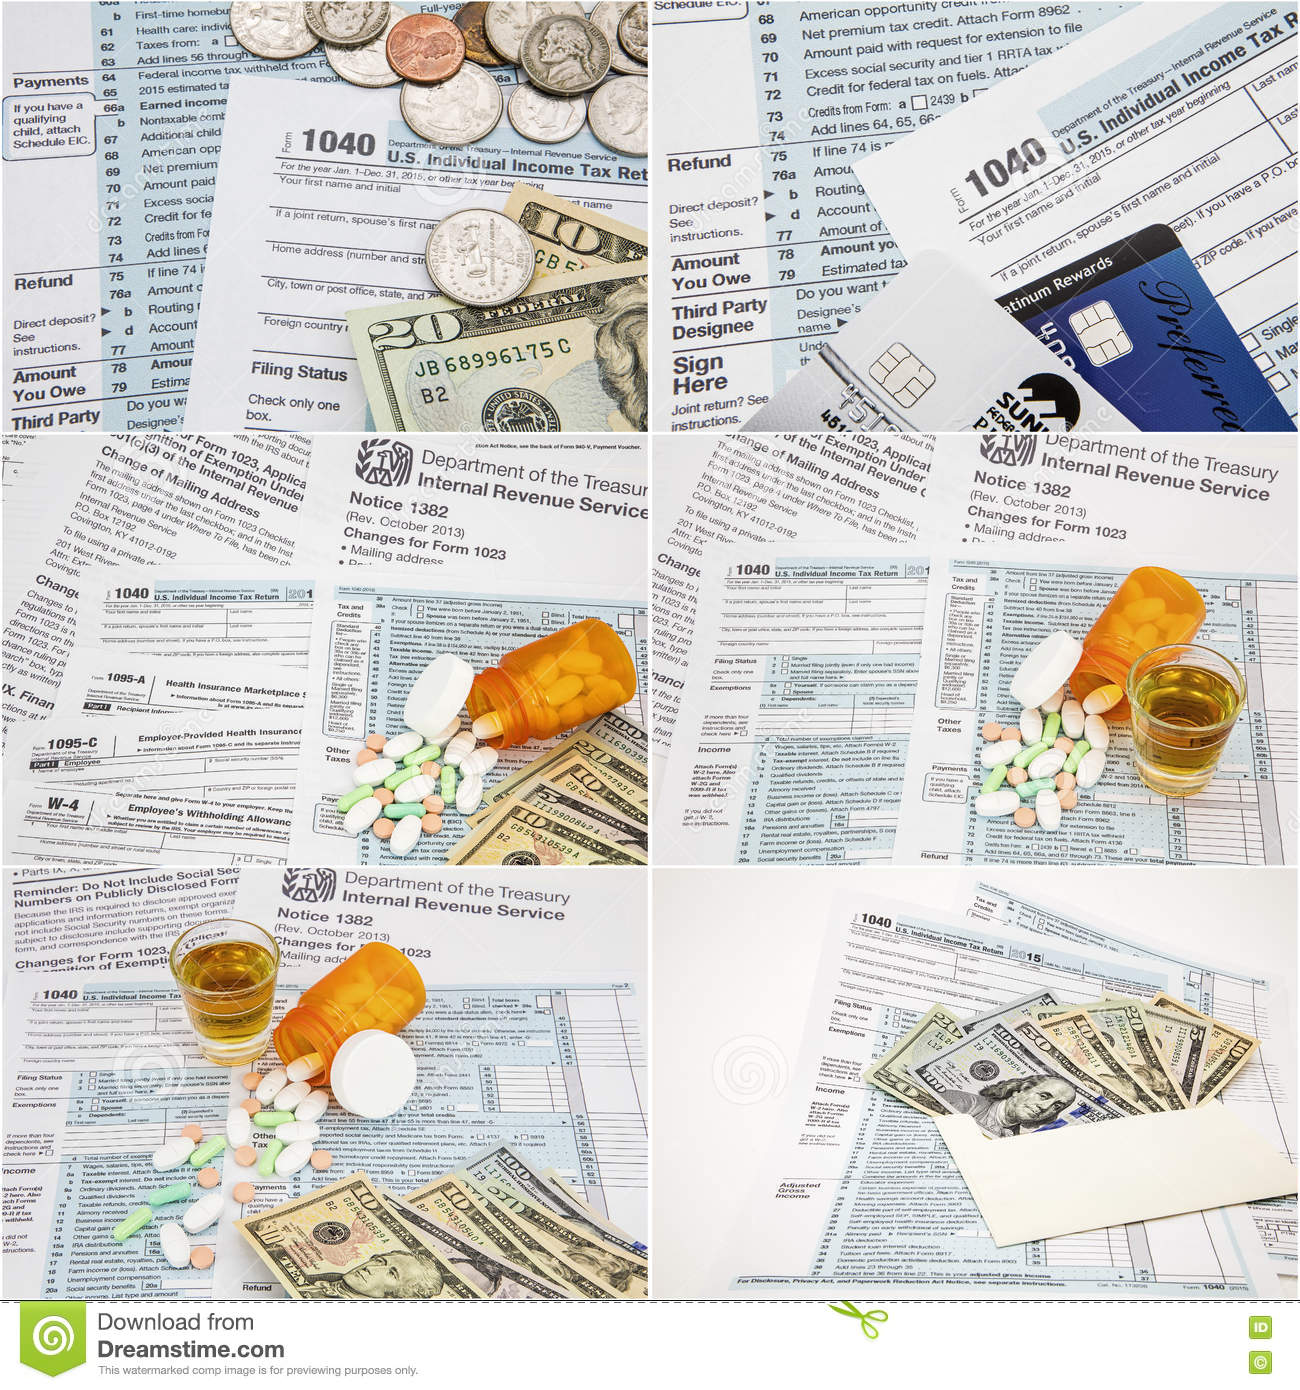 Irs income tax time forms 1040 narcotics drugs money collage stock irs income tax time forms 1040 narcotics drugs money collage falaconquin